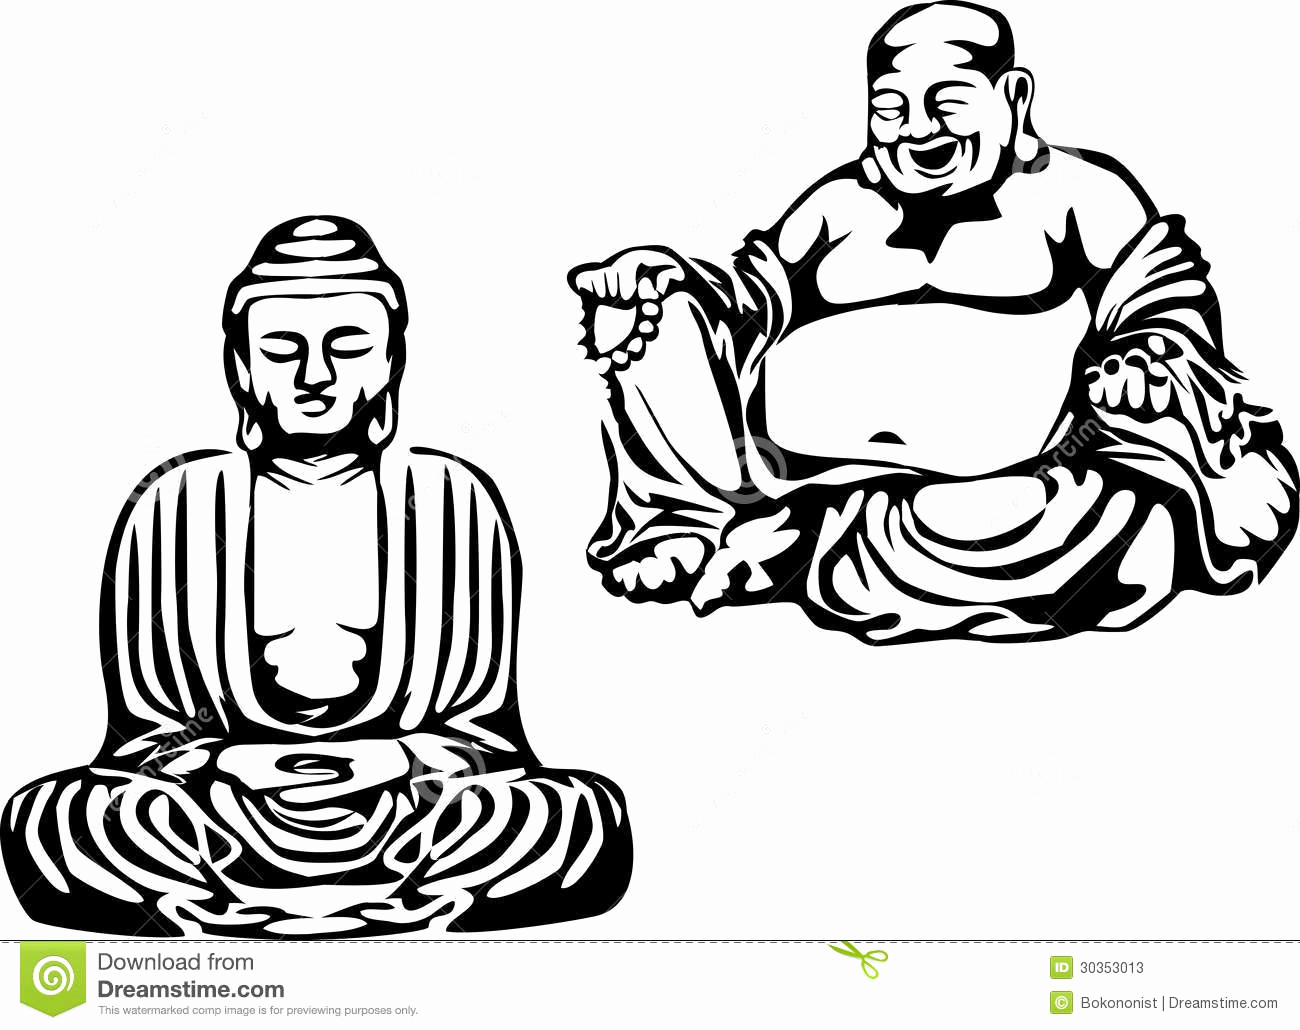 Black and White Illustrations New Buddha Stock S Image